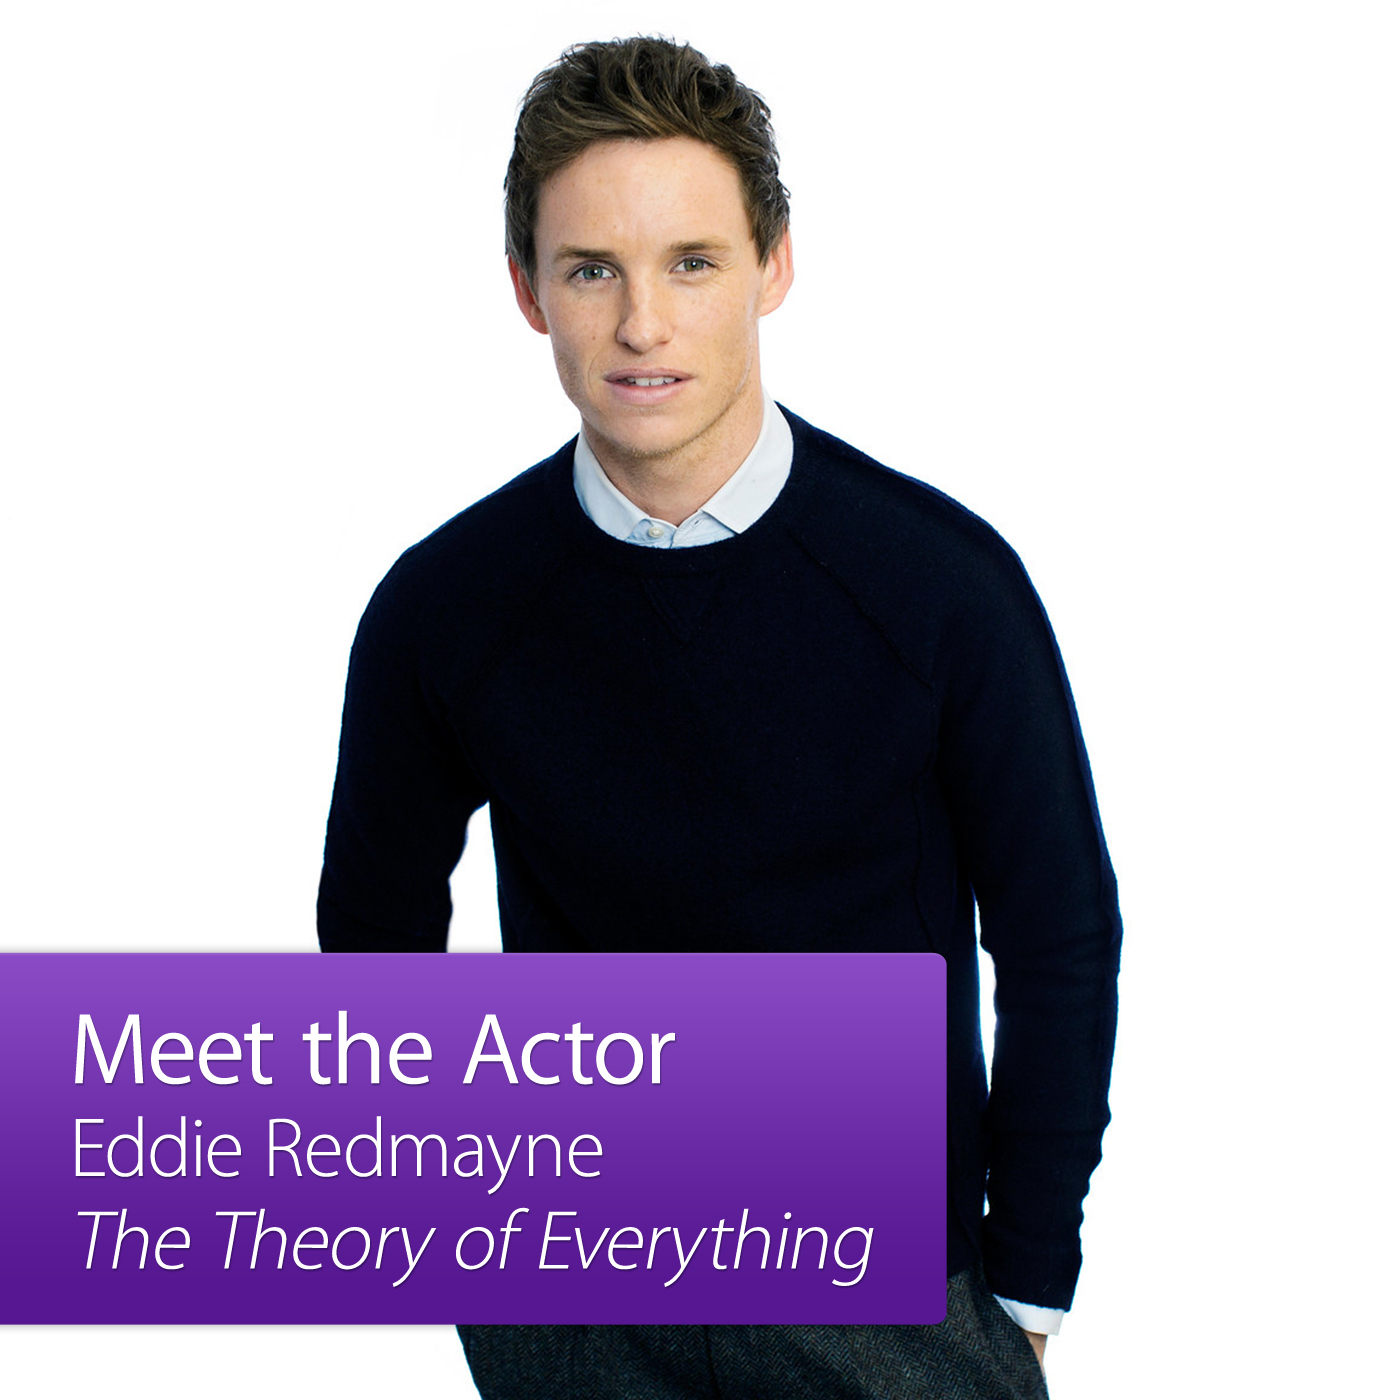 Eddie Redmayne: Meet the Actor